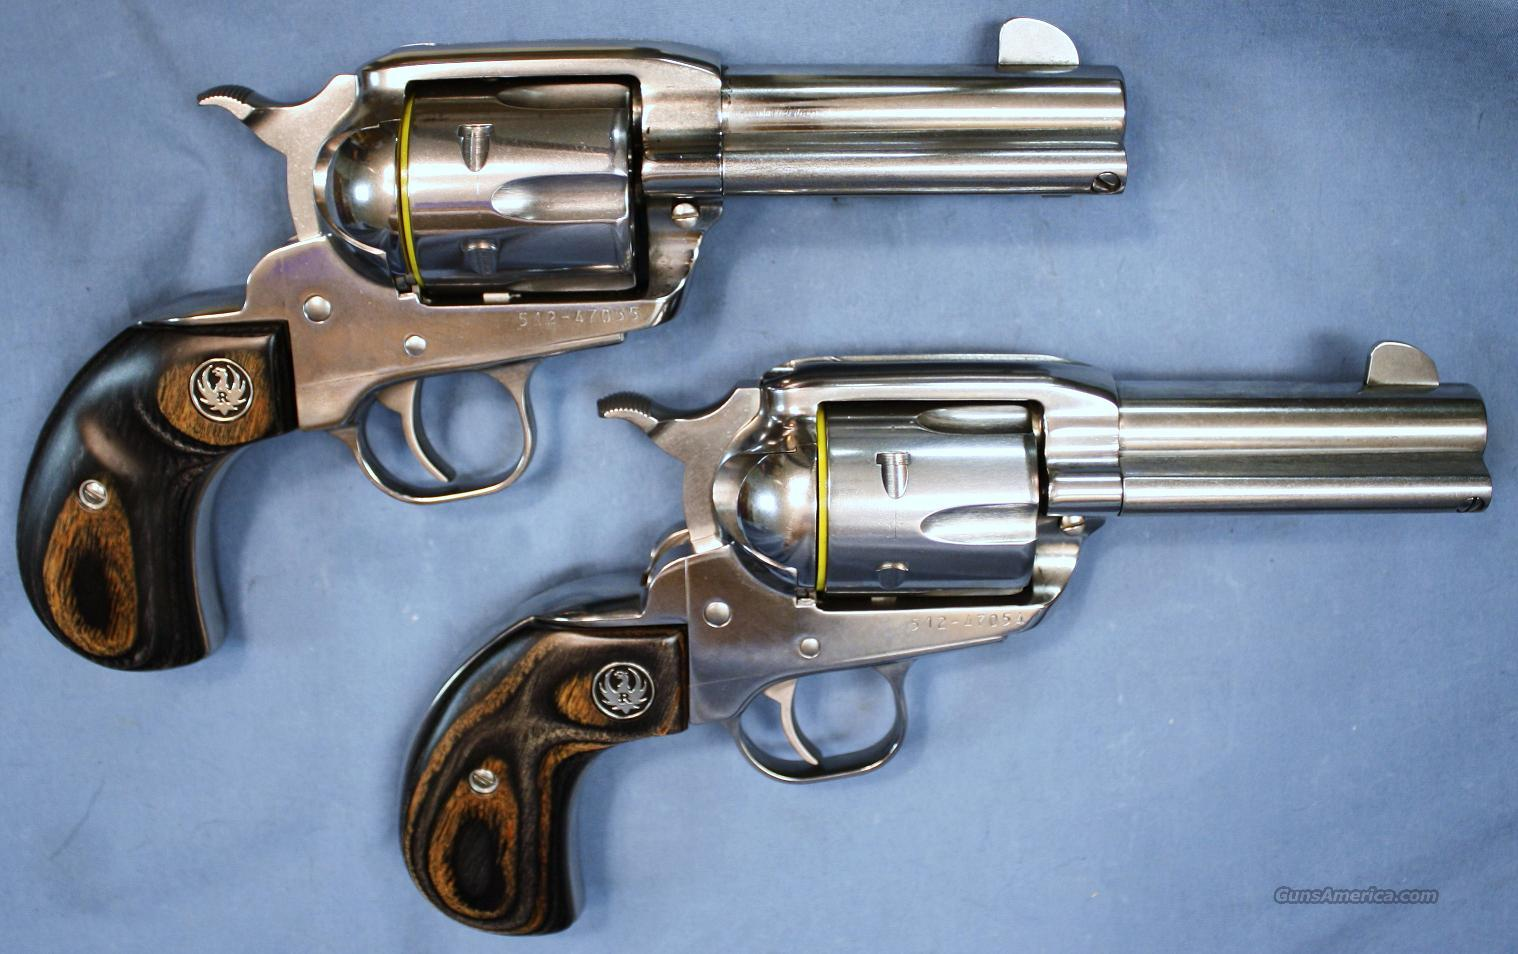 Ruger New Vaquero Consecutive Pair Birds Head Stainless Steel Single Action Revolvers .45 Colt  Guns > Pistols > Ruger Single Action Revolvers > Cowboy Action